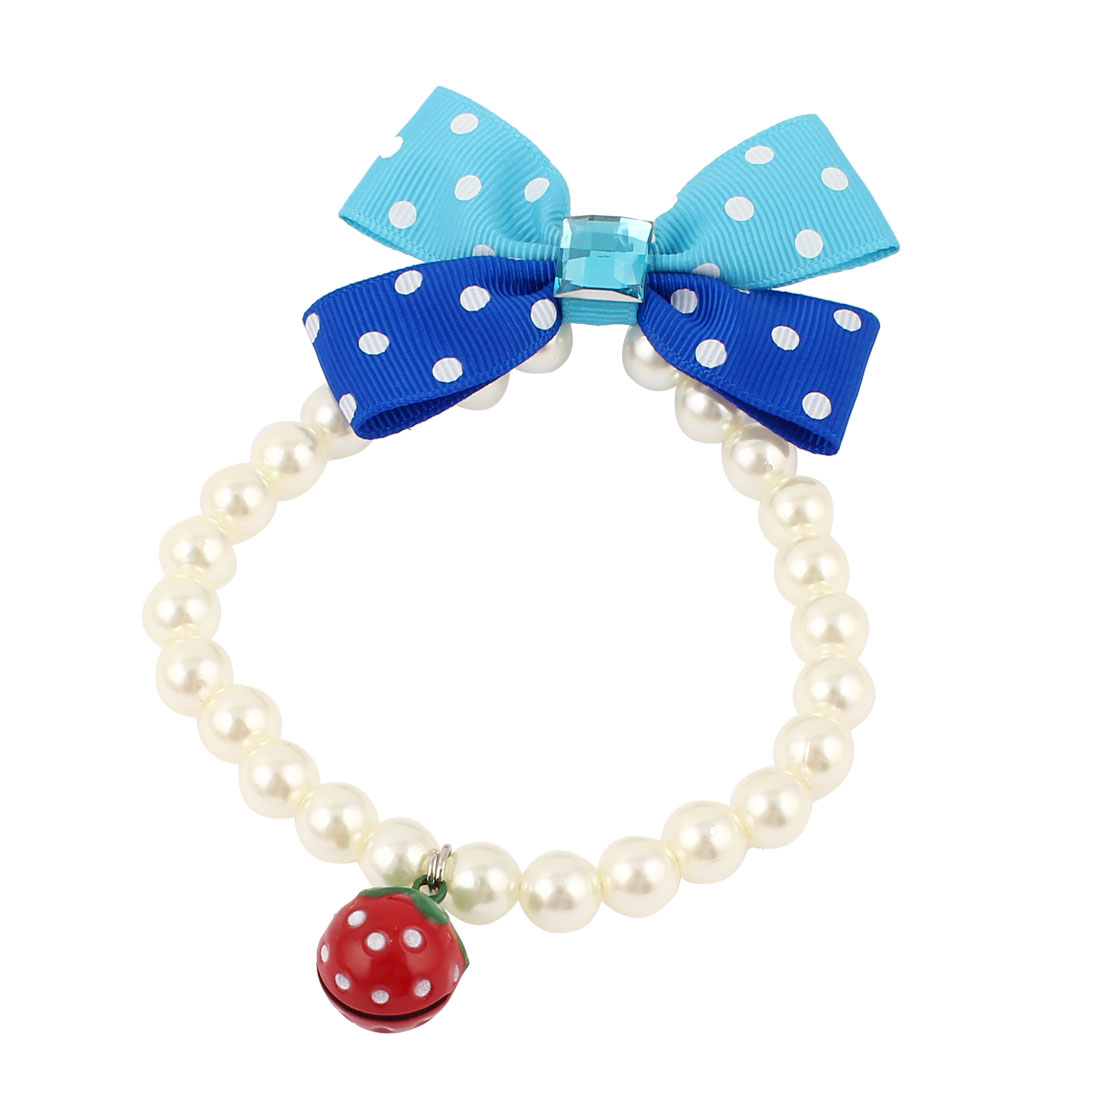 Metal Bell Pendant Bowknot Accent Pet Dog Plastic Beads Imitation Pearls Collar Necklace White S